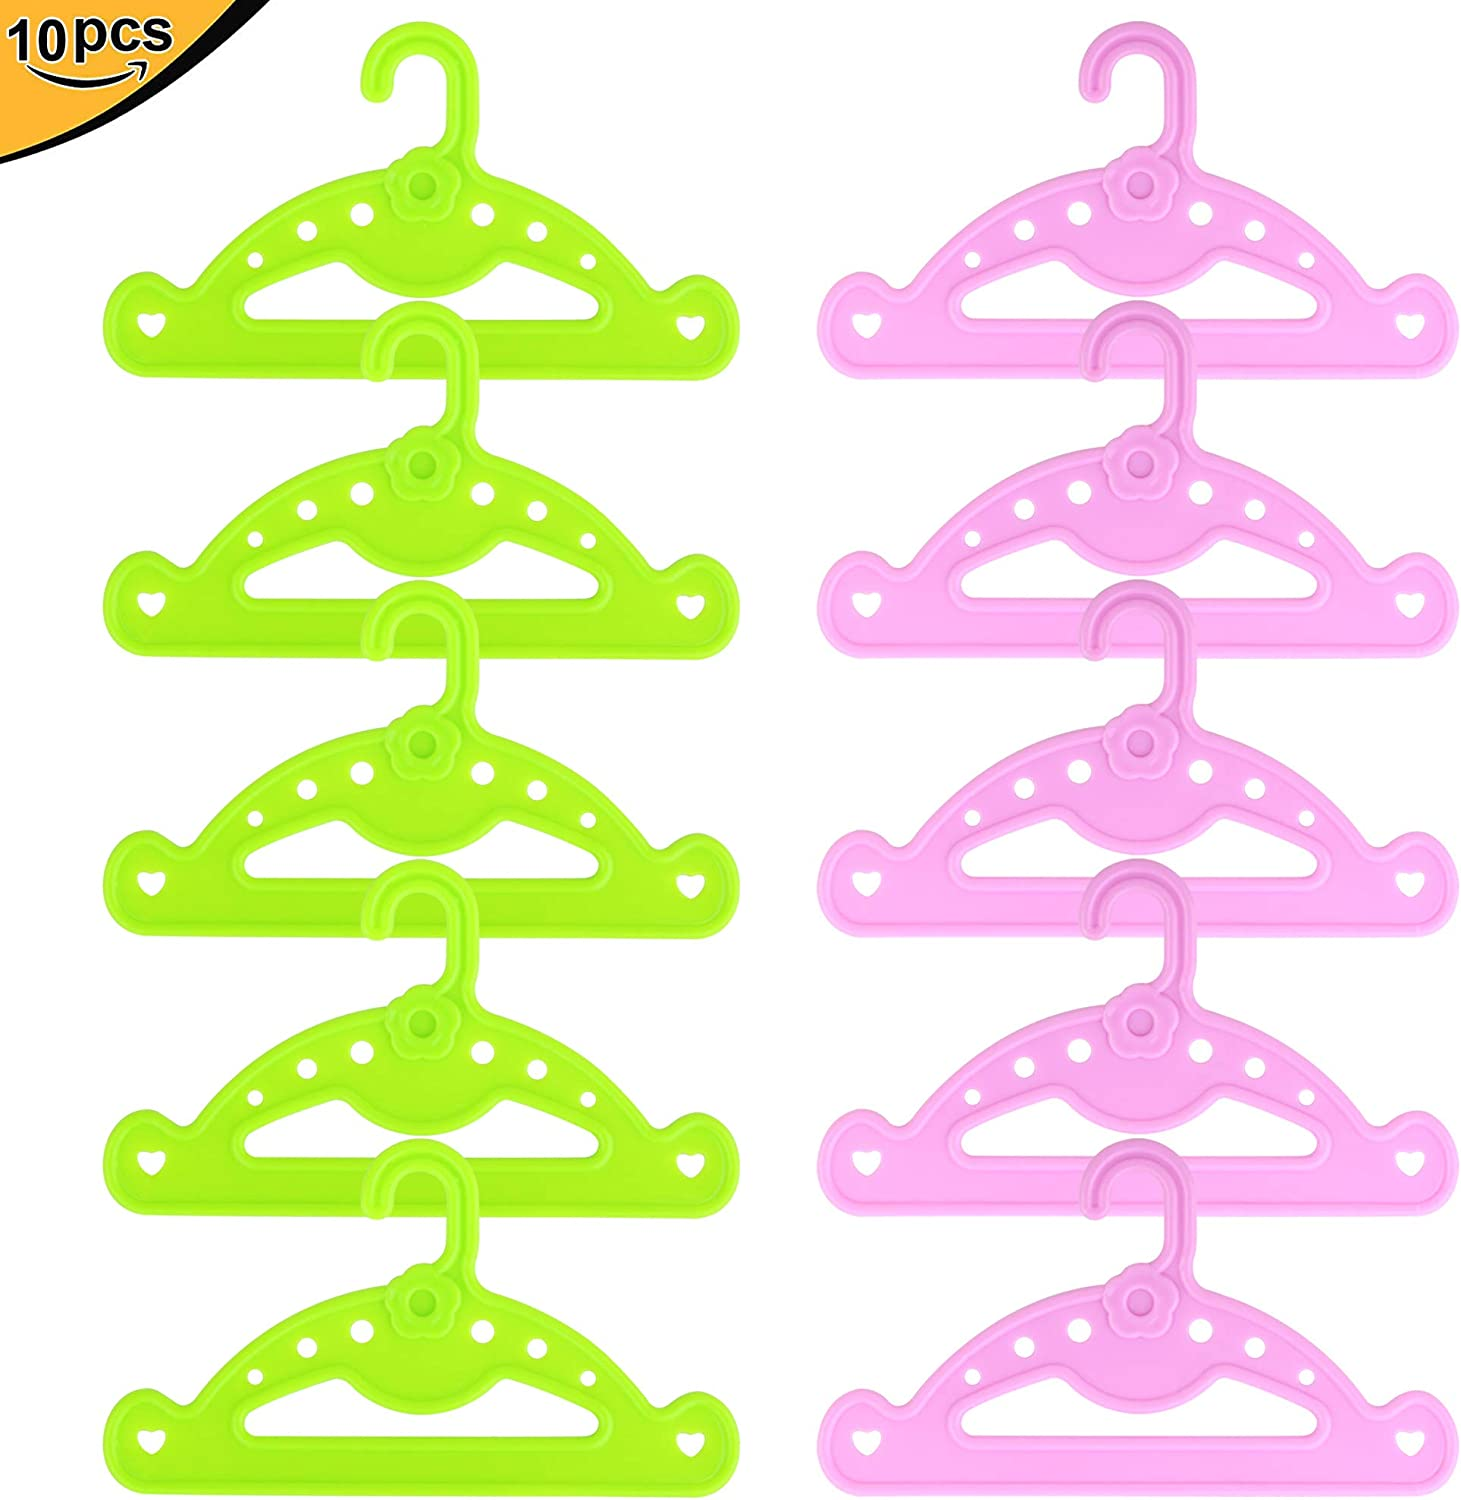 10pcs Fit For 18/'/' American Girl Clothes Hangers Set Rose Red New Doll Accessory